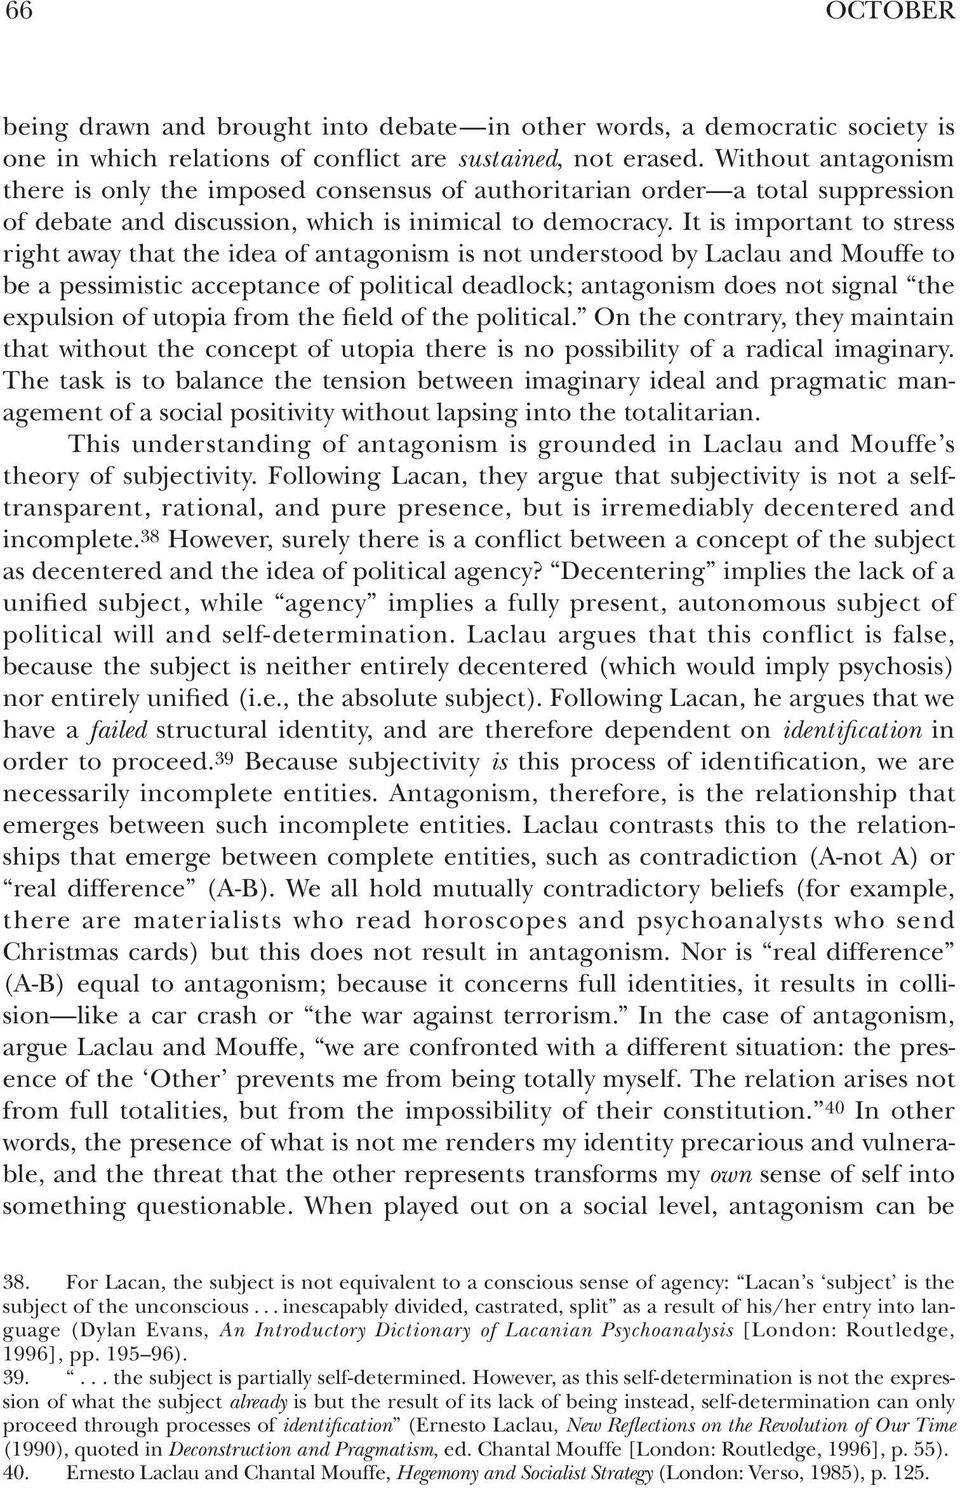 It is important to stress right away that the idea of antagonism is not understood by Laclau and Mouffe to be a pessimistic acceptance of political deadlock; antagonism does not signal the expulsion